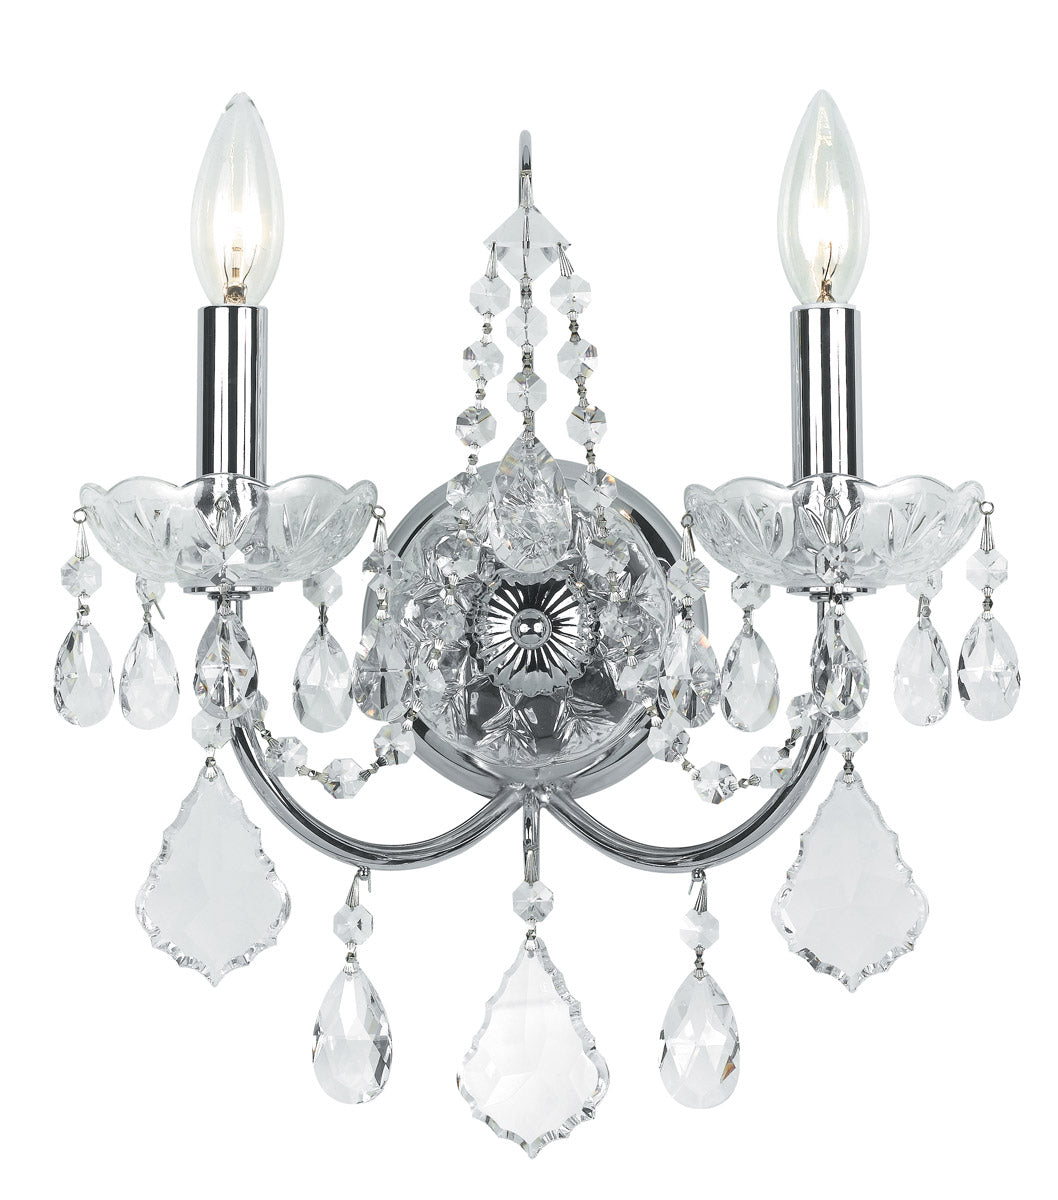 Crystorama 14 Inch Imperial 2 Light Wall Sconce